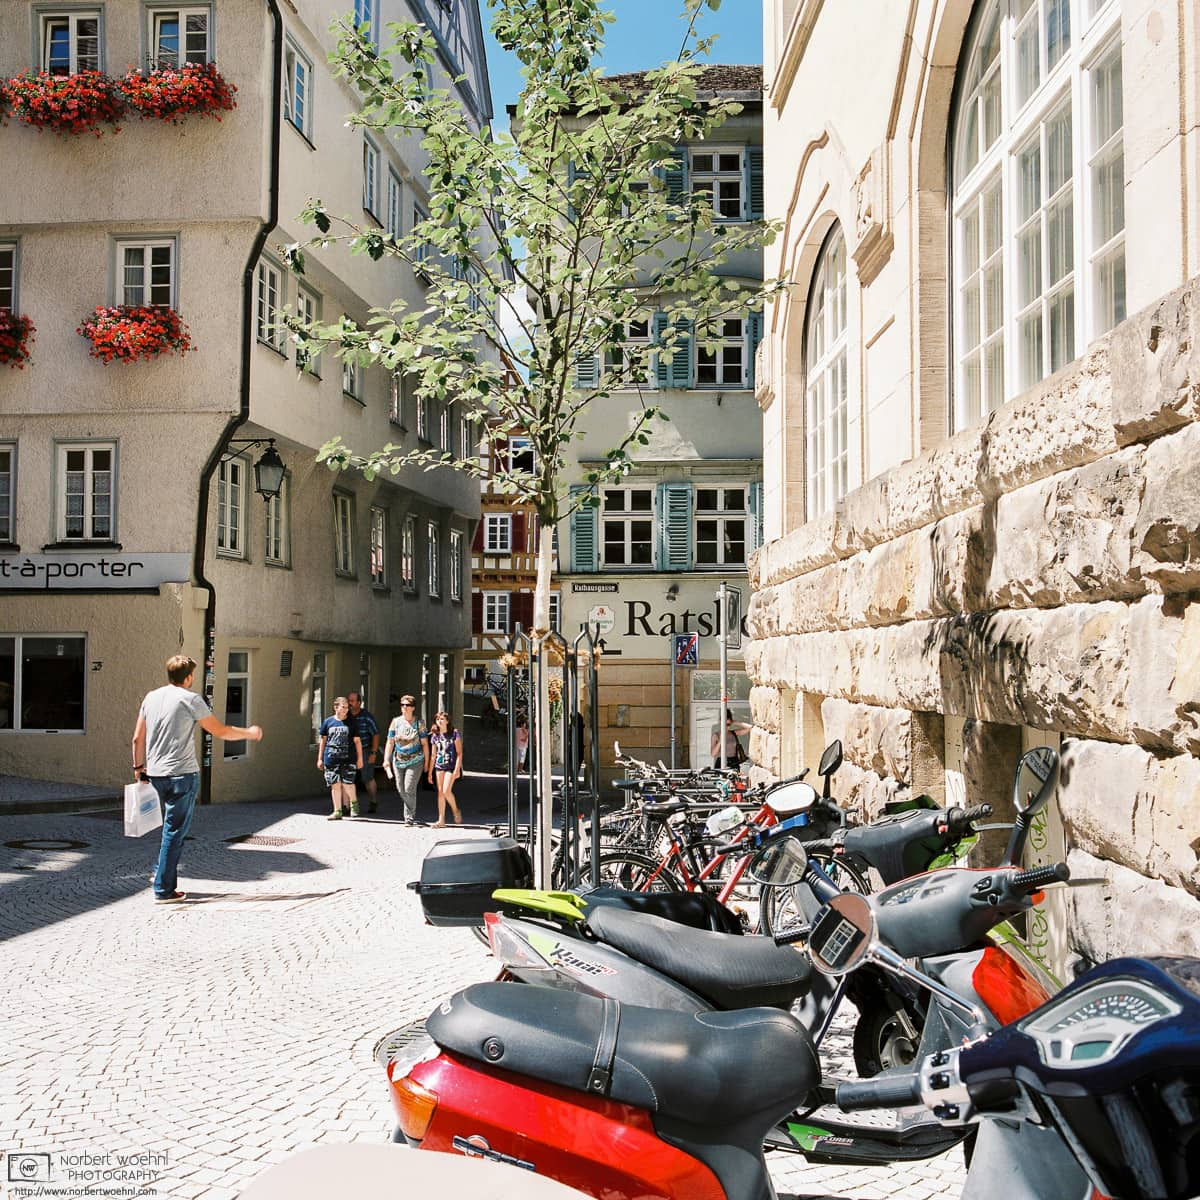 Old Town Haaggasse with Motorcycles, Tübingen, Germany Photo